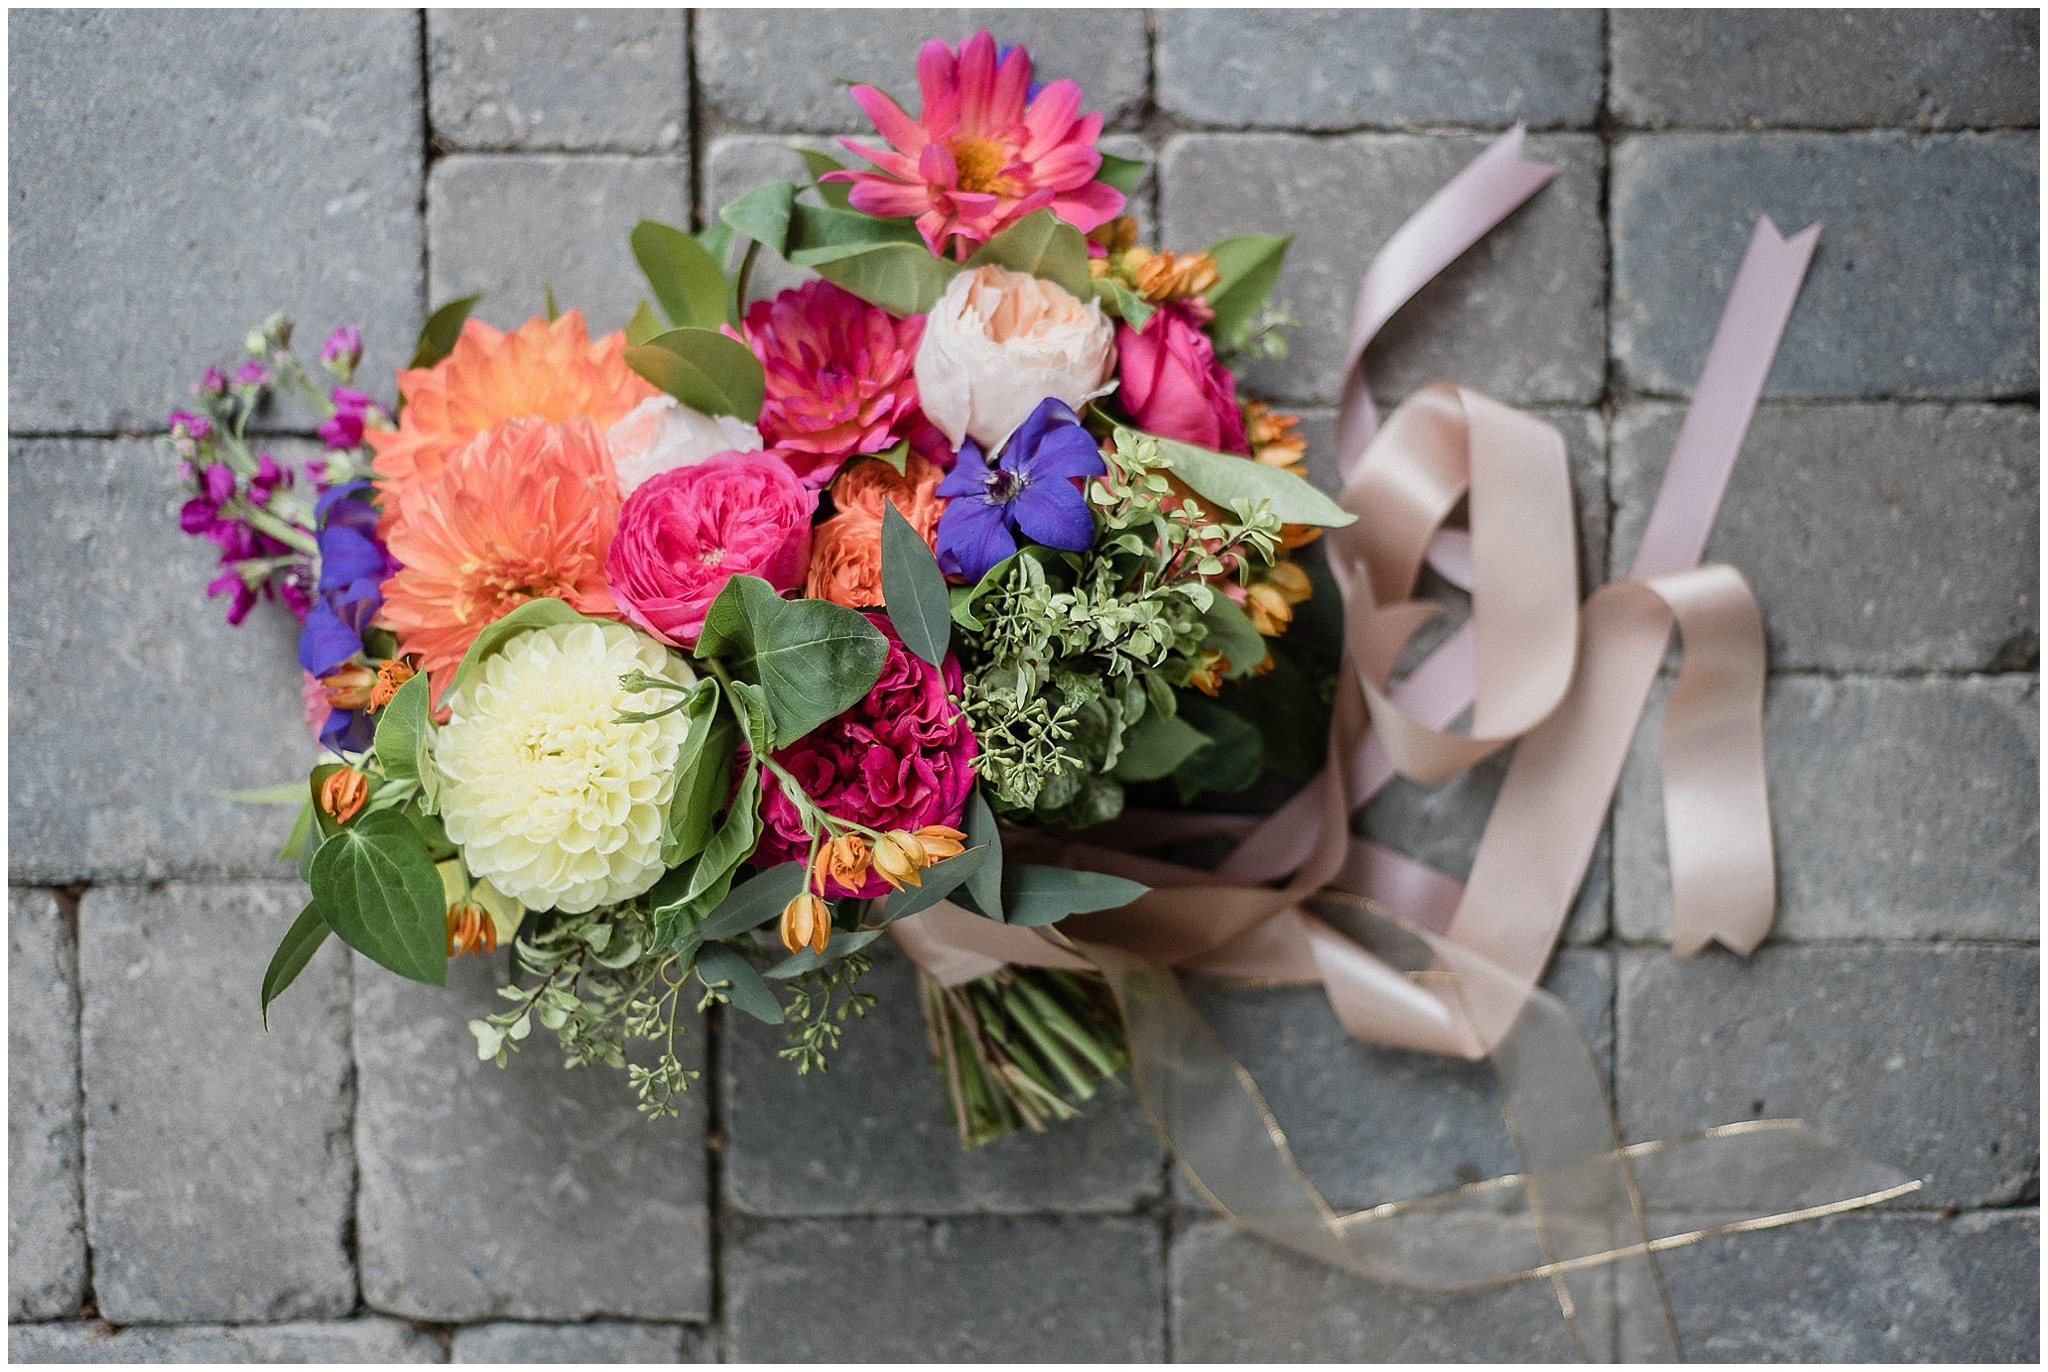 Blush and Bloom bridal bouquet at a Markland Wood Golf Course wedding photographed by Jenn Kavanagh Photography